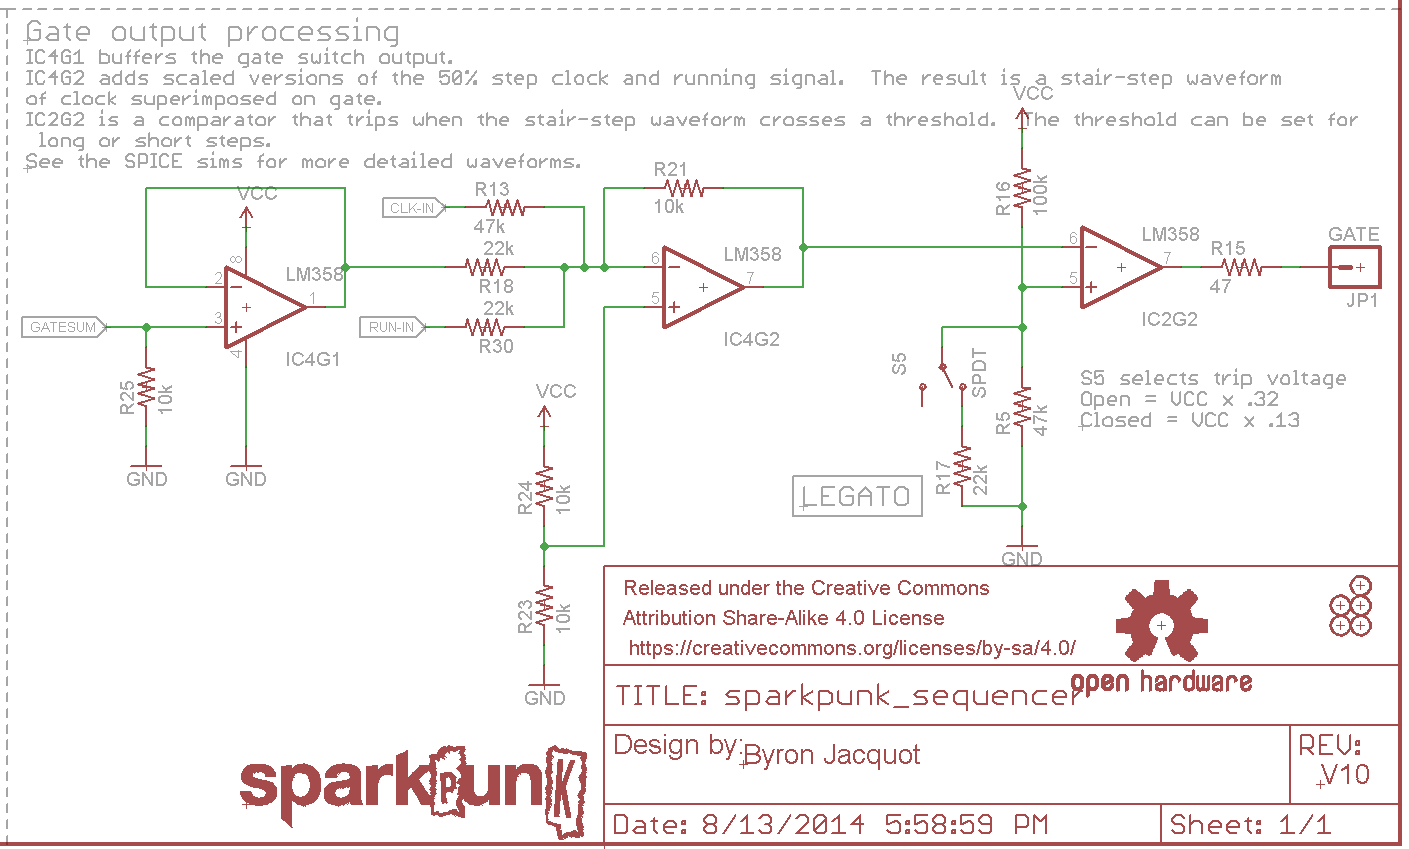 Sparkpunk Sequencer Theory And Applications Guide Charge Sensitive Amplifier Circuit Gate